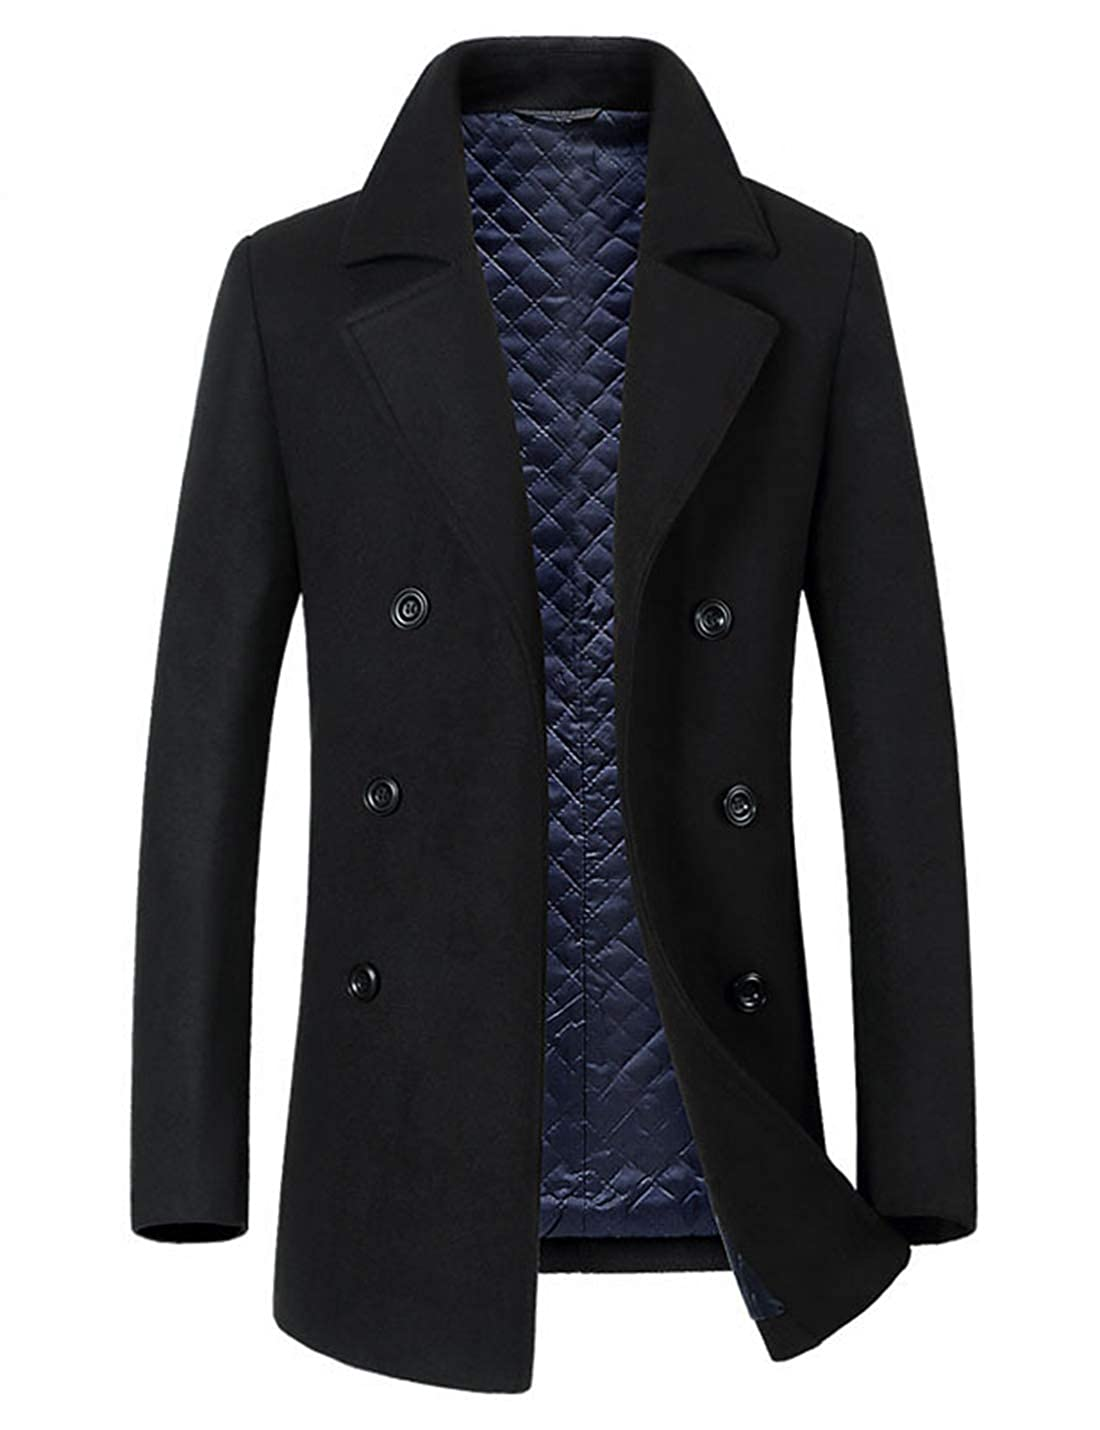 Yeokou Men's Casual Slim Winter Double Breasted Mid Long Wool Pea Coat Overcoat